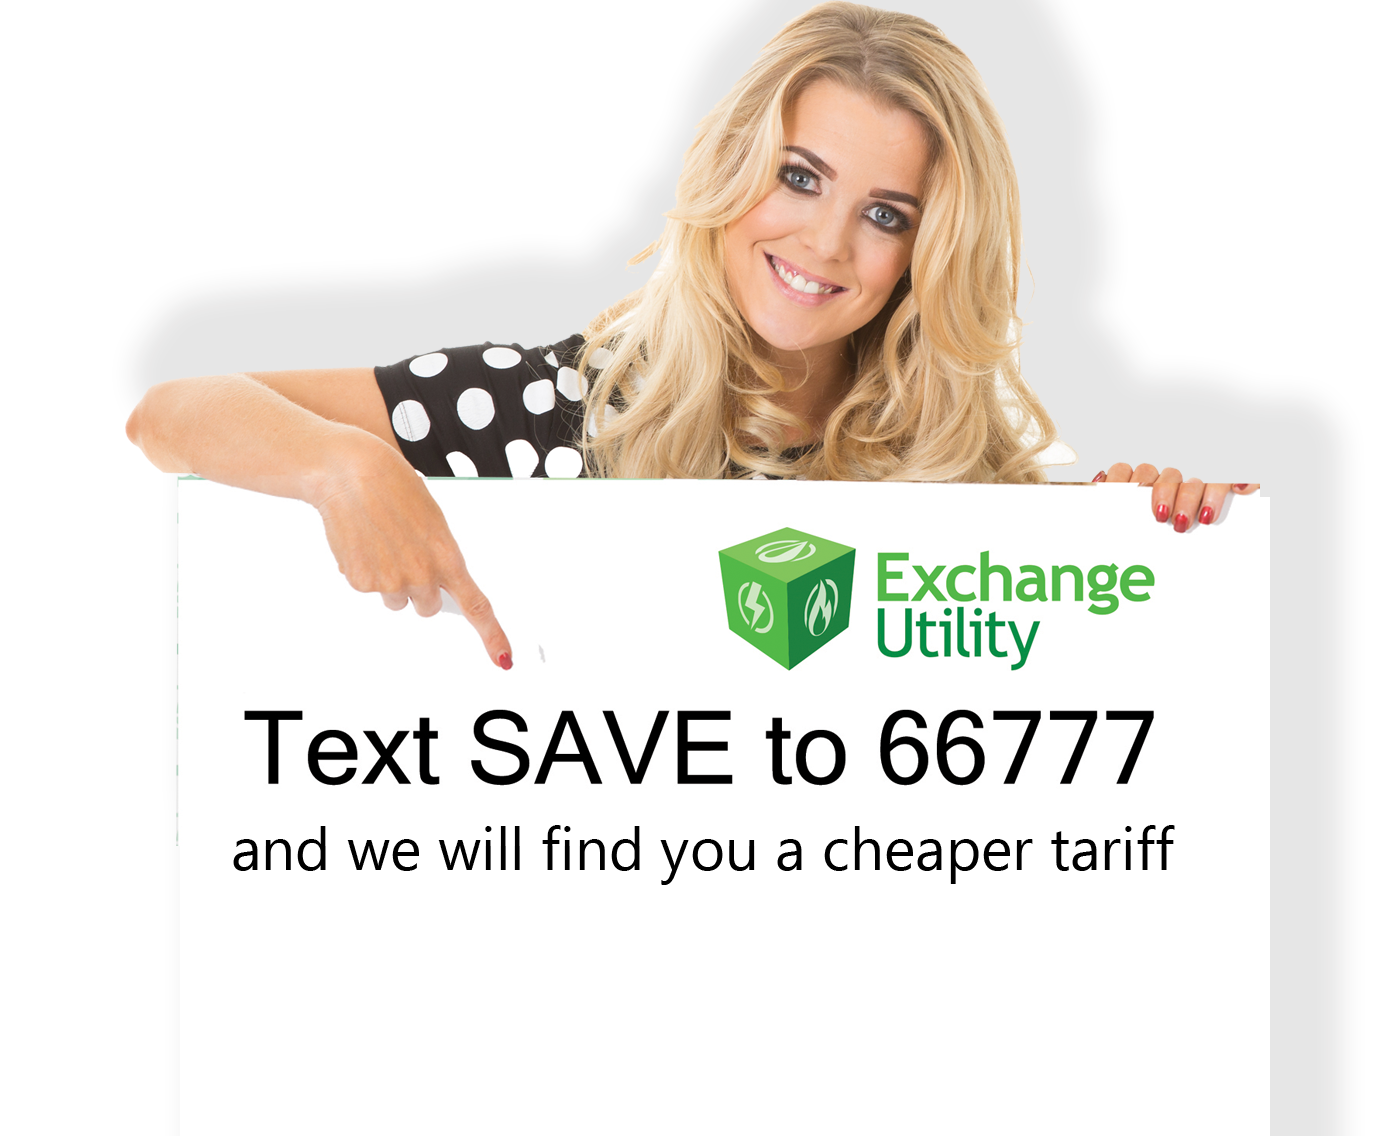 for uk business energy services text save to 66777